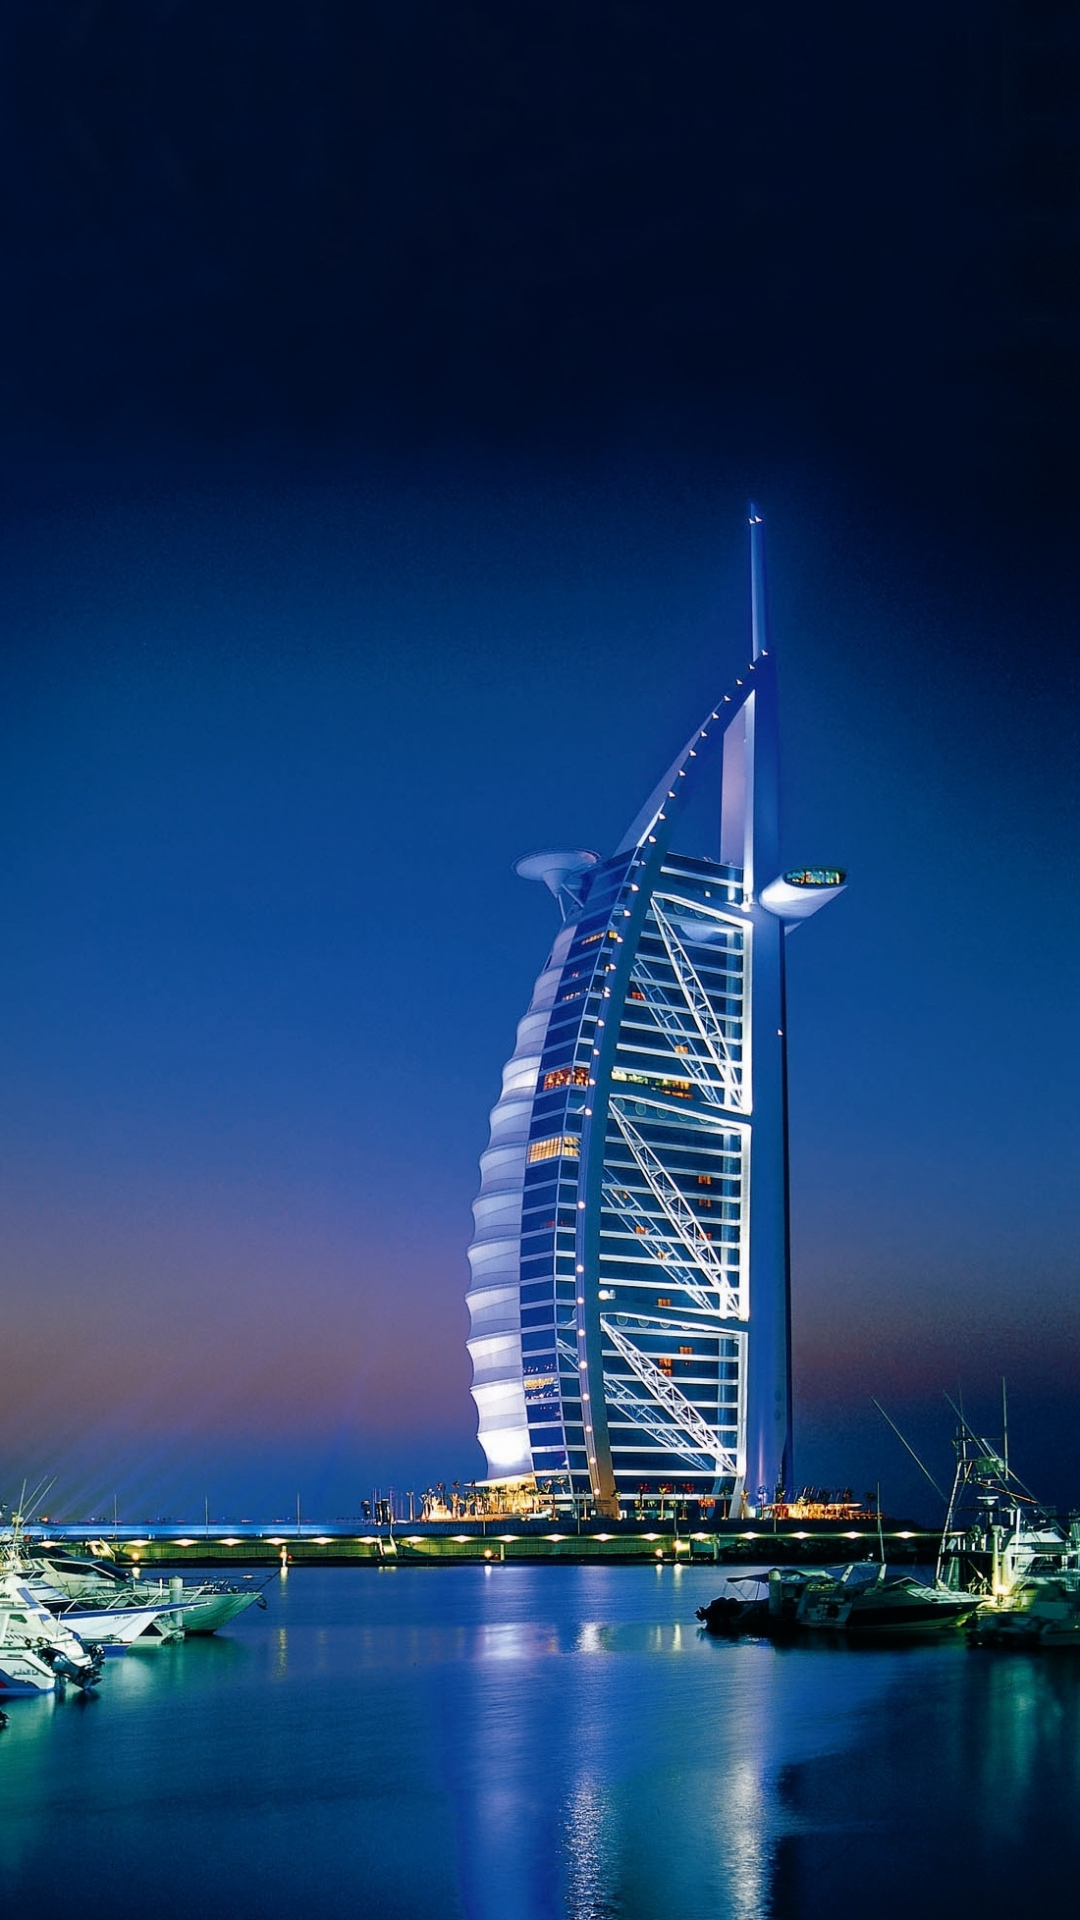 Dubai burj al arab best htc one wallpapers for Dubai burj al arab